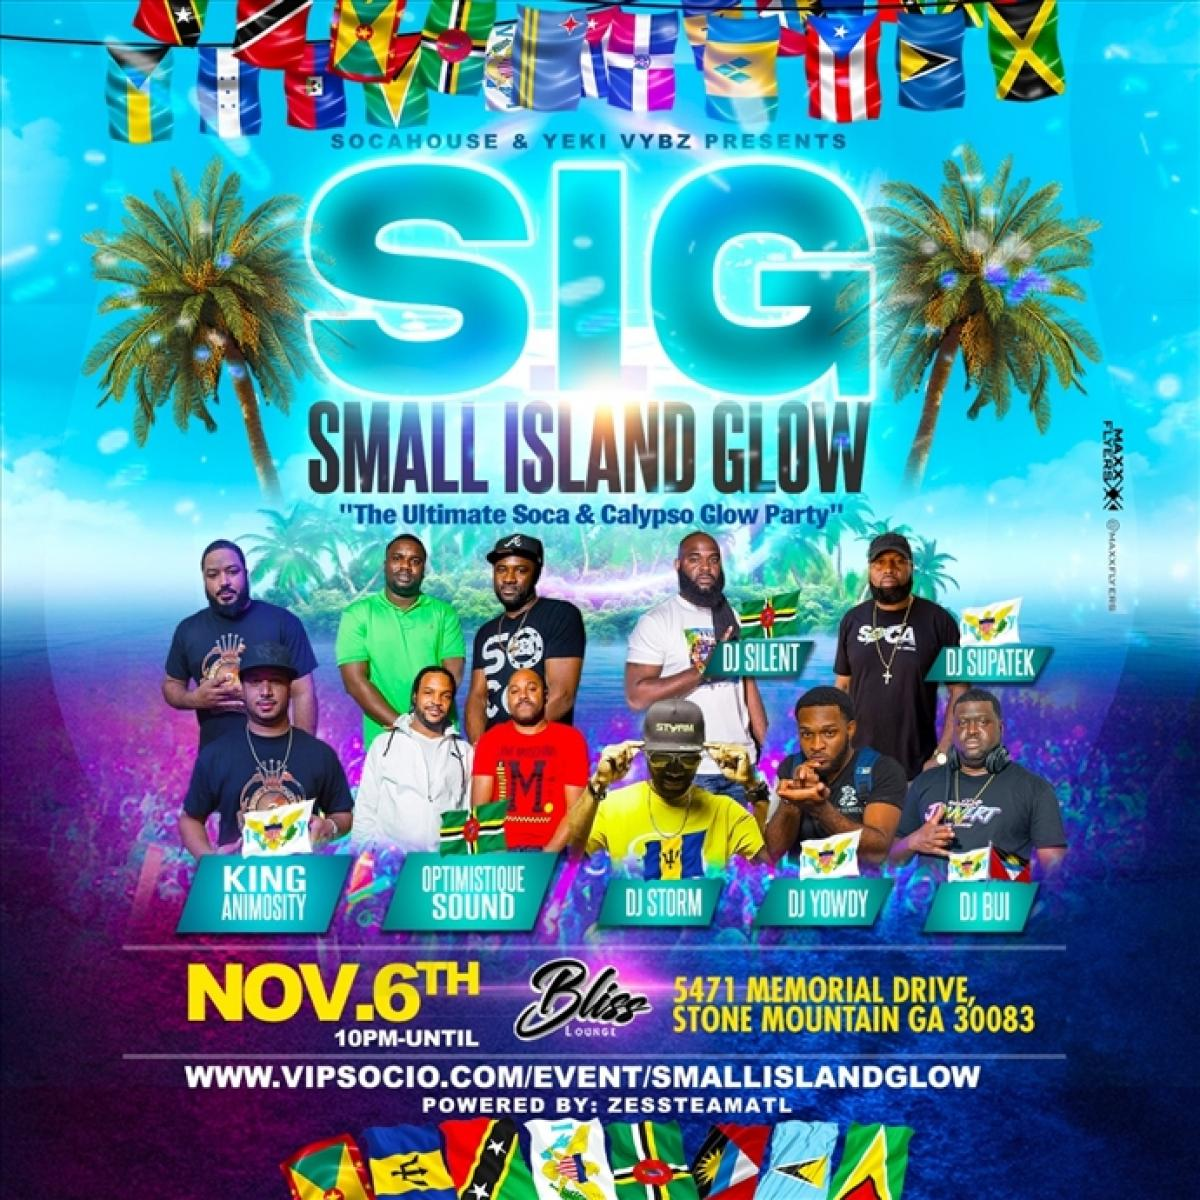 Small Island Glow flyer or graphic.